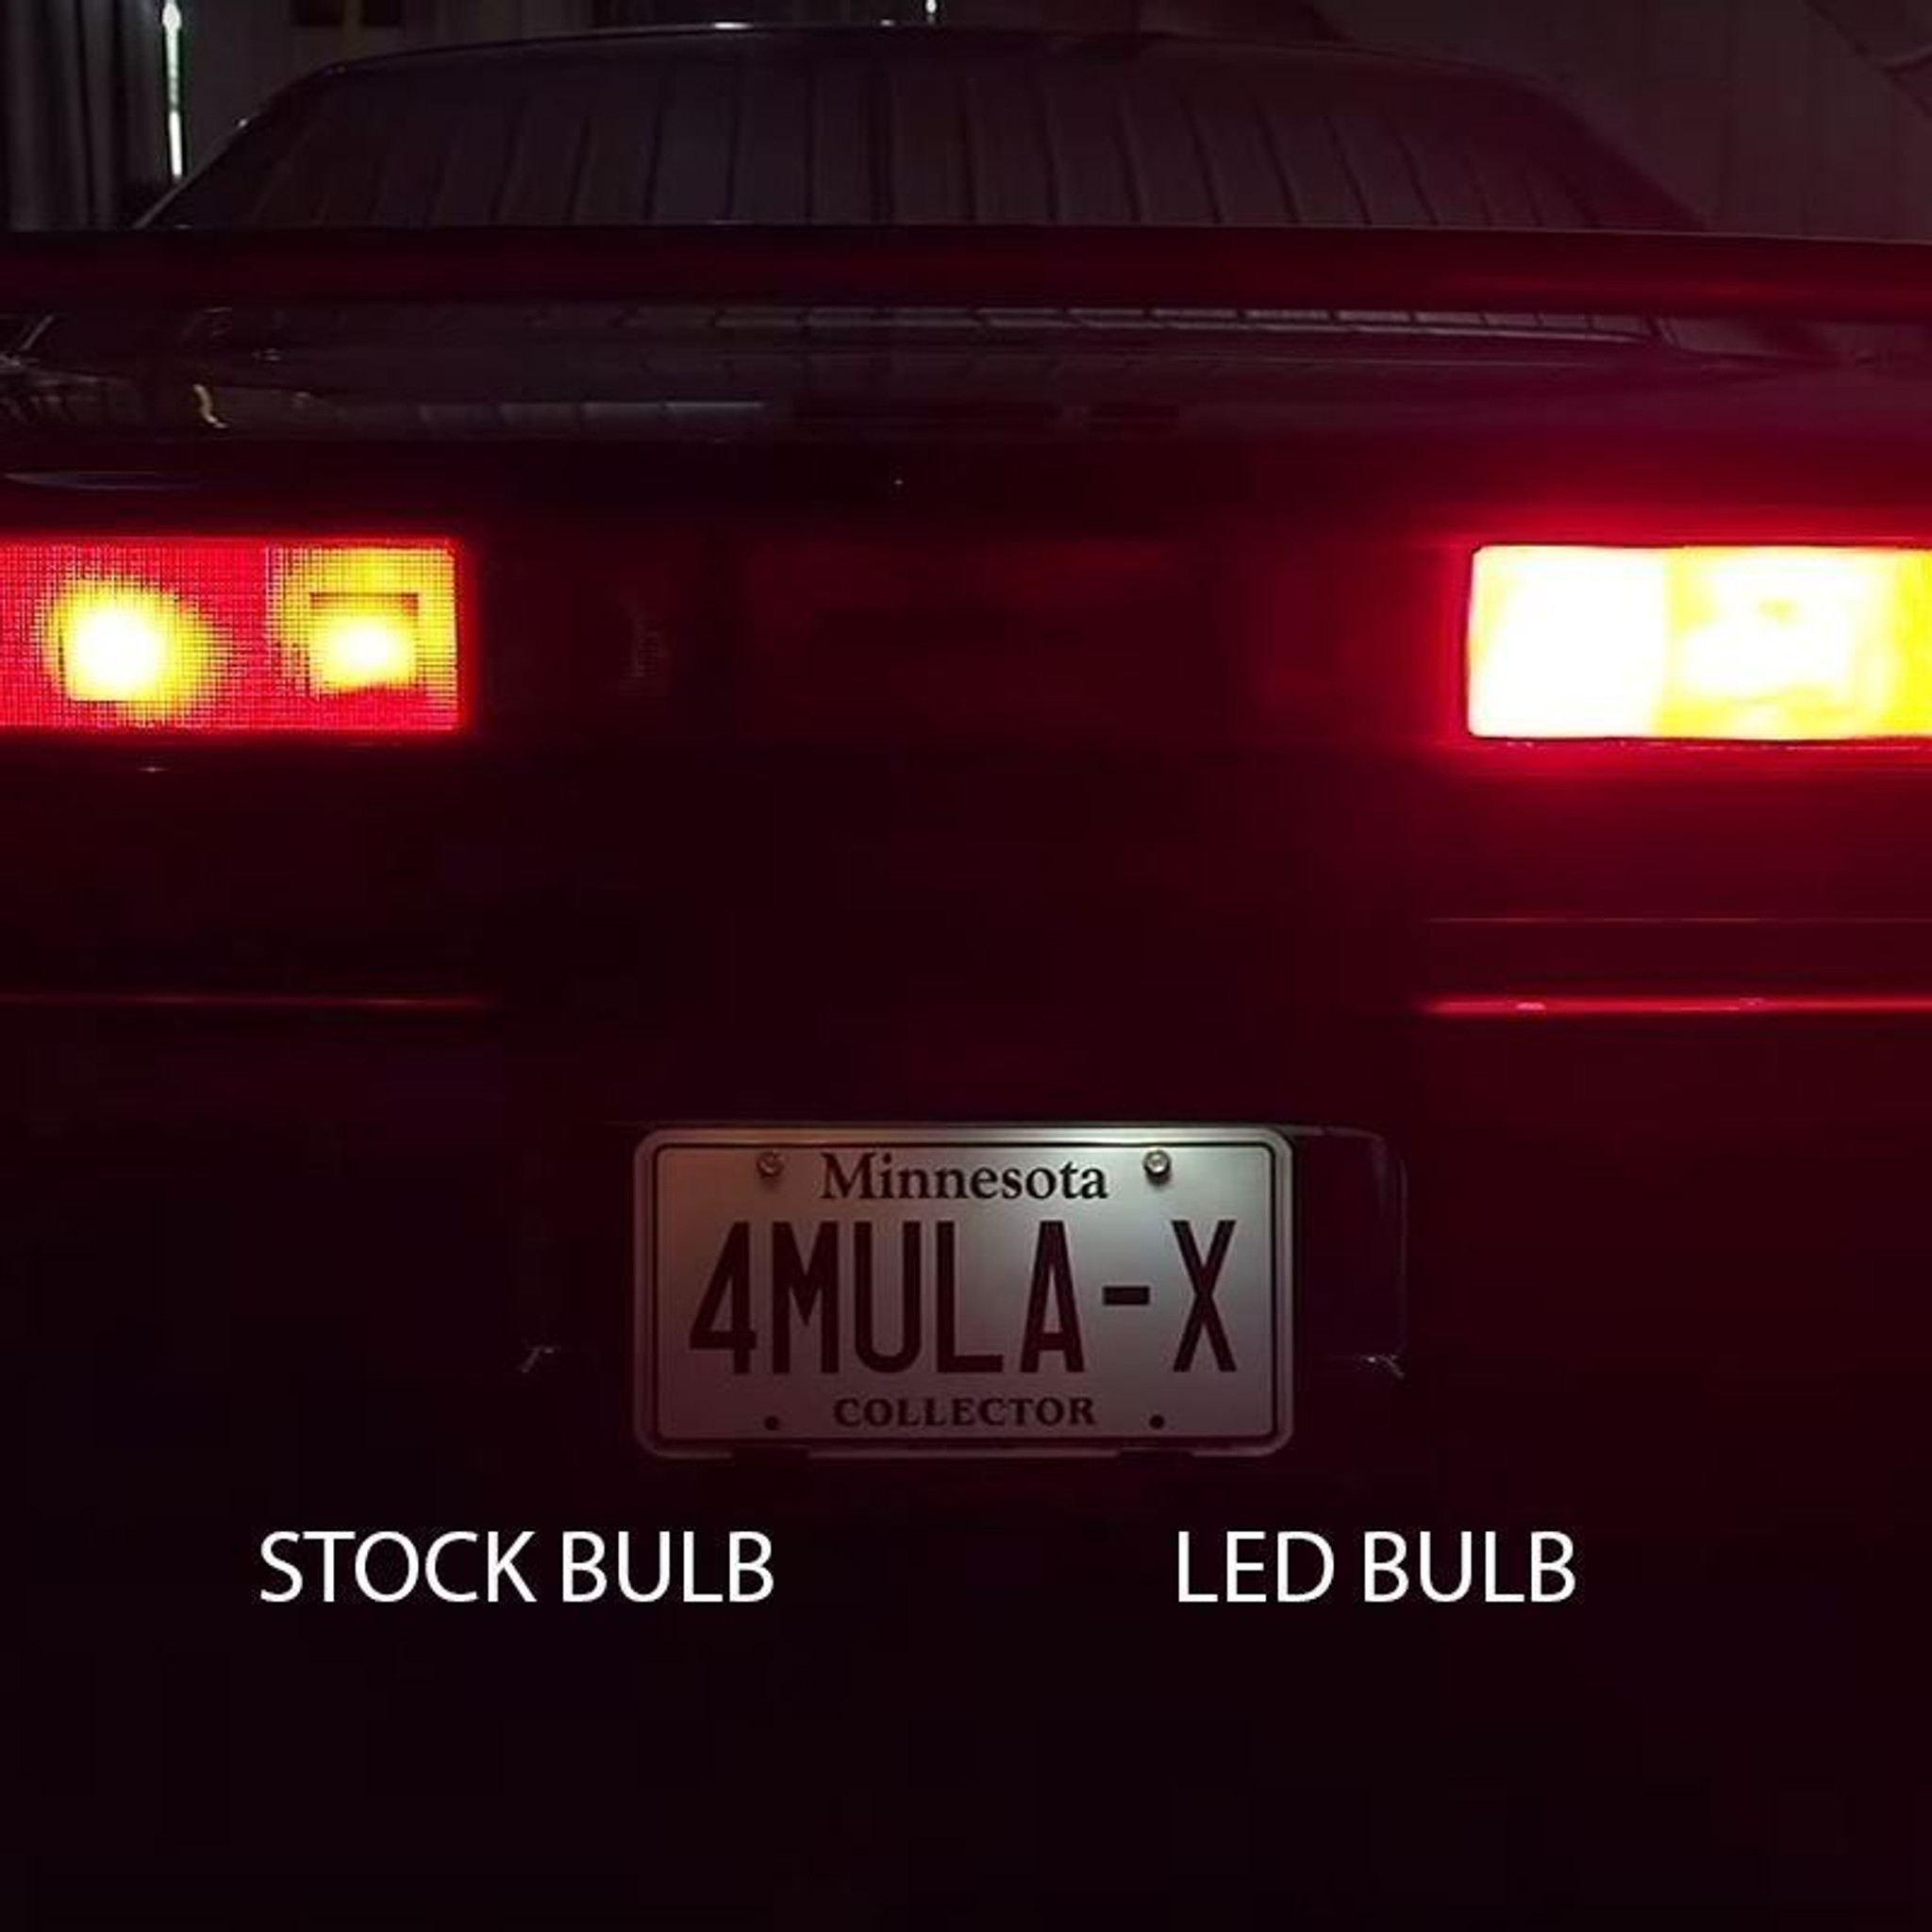 LED LICENSE PLATE LIGHTS Acura NSX LED Bulb Upgrade Kit - Acura license plate